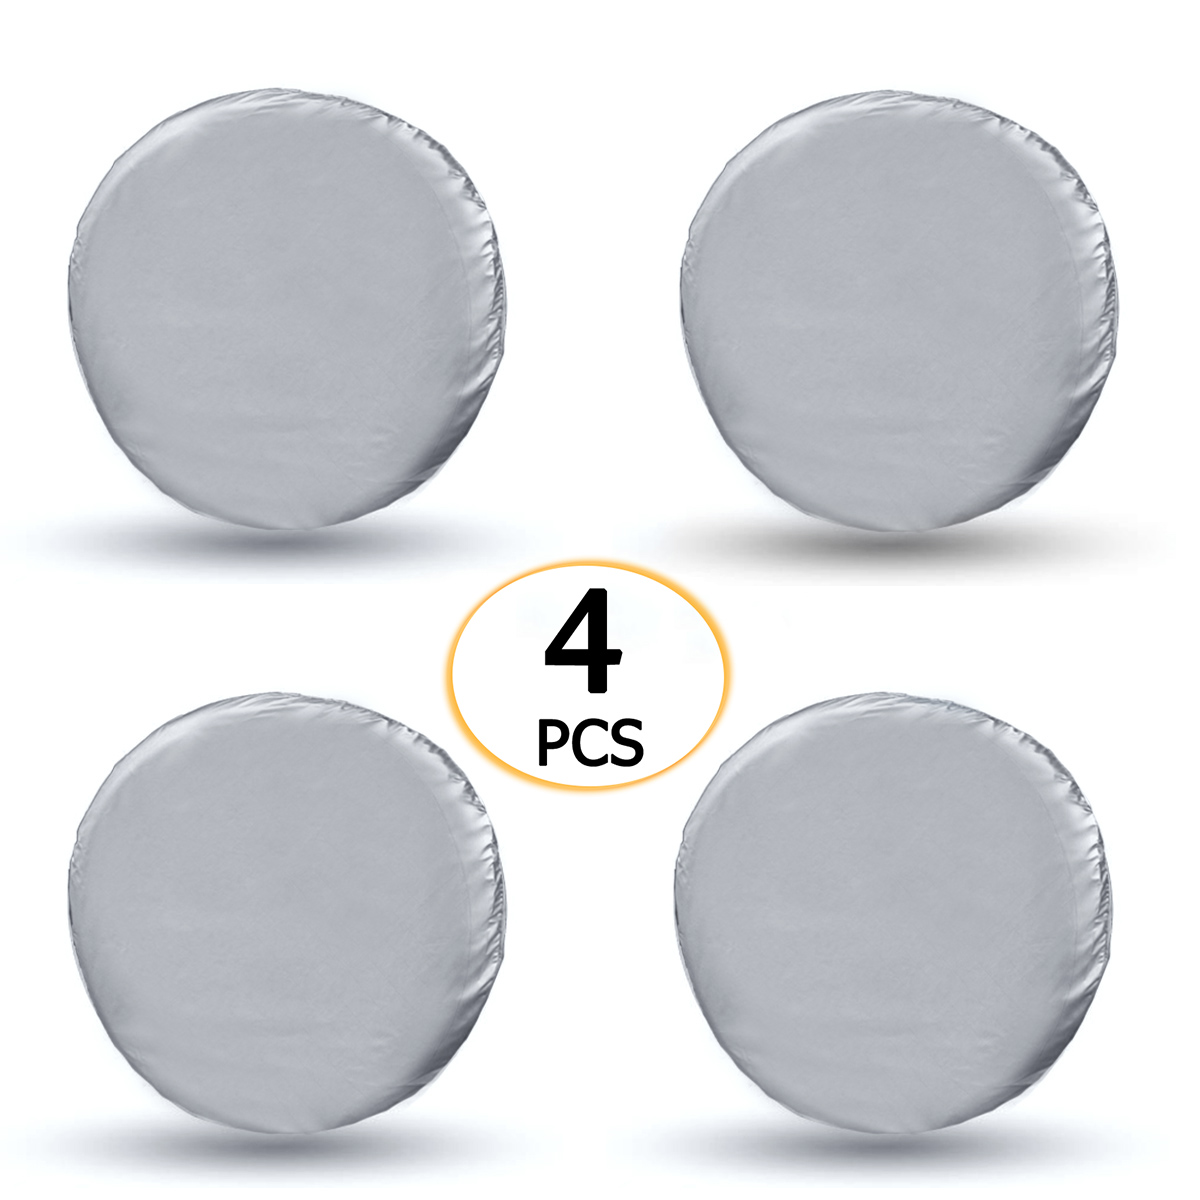 4pcs Tyre Cover Car Auto Wheel Tire Cover Bag For Truck Trailer RV Camper Motorhome Waterproof Dustproof Silver Tire Bag